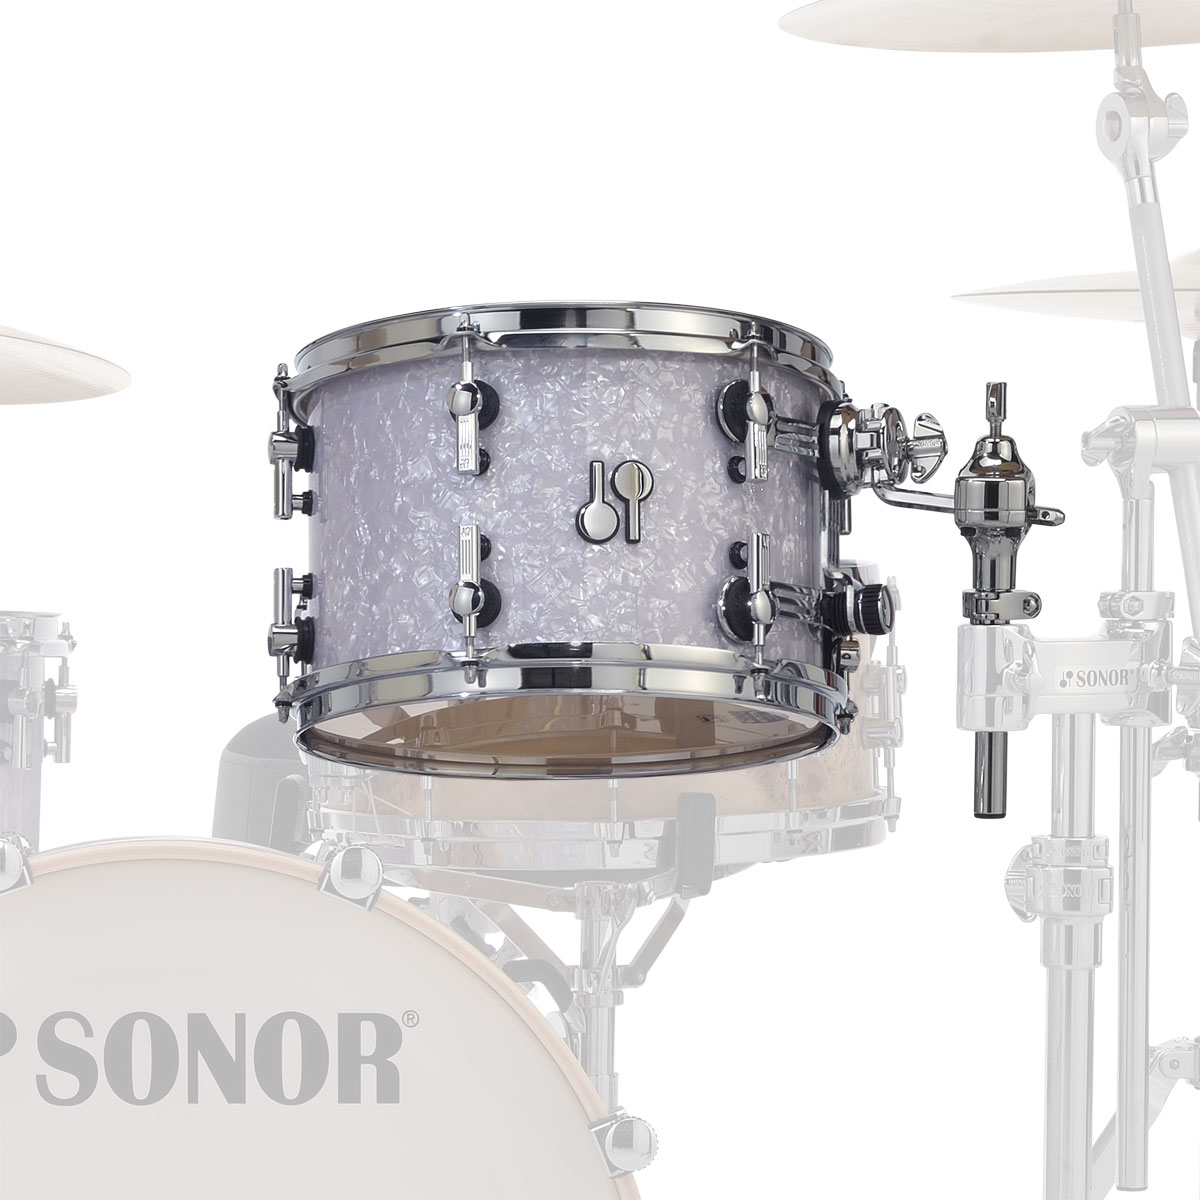 "Sonor 12"" (Diameter) x 8"" (Deep) SQ2 Vintage Maple Tom"